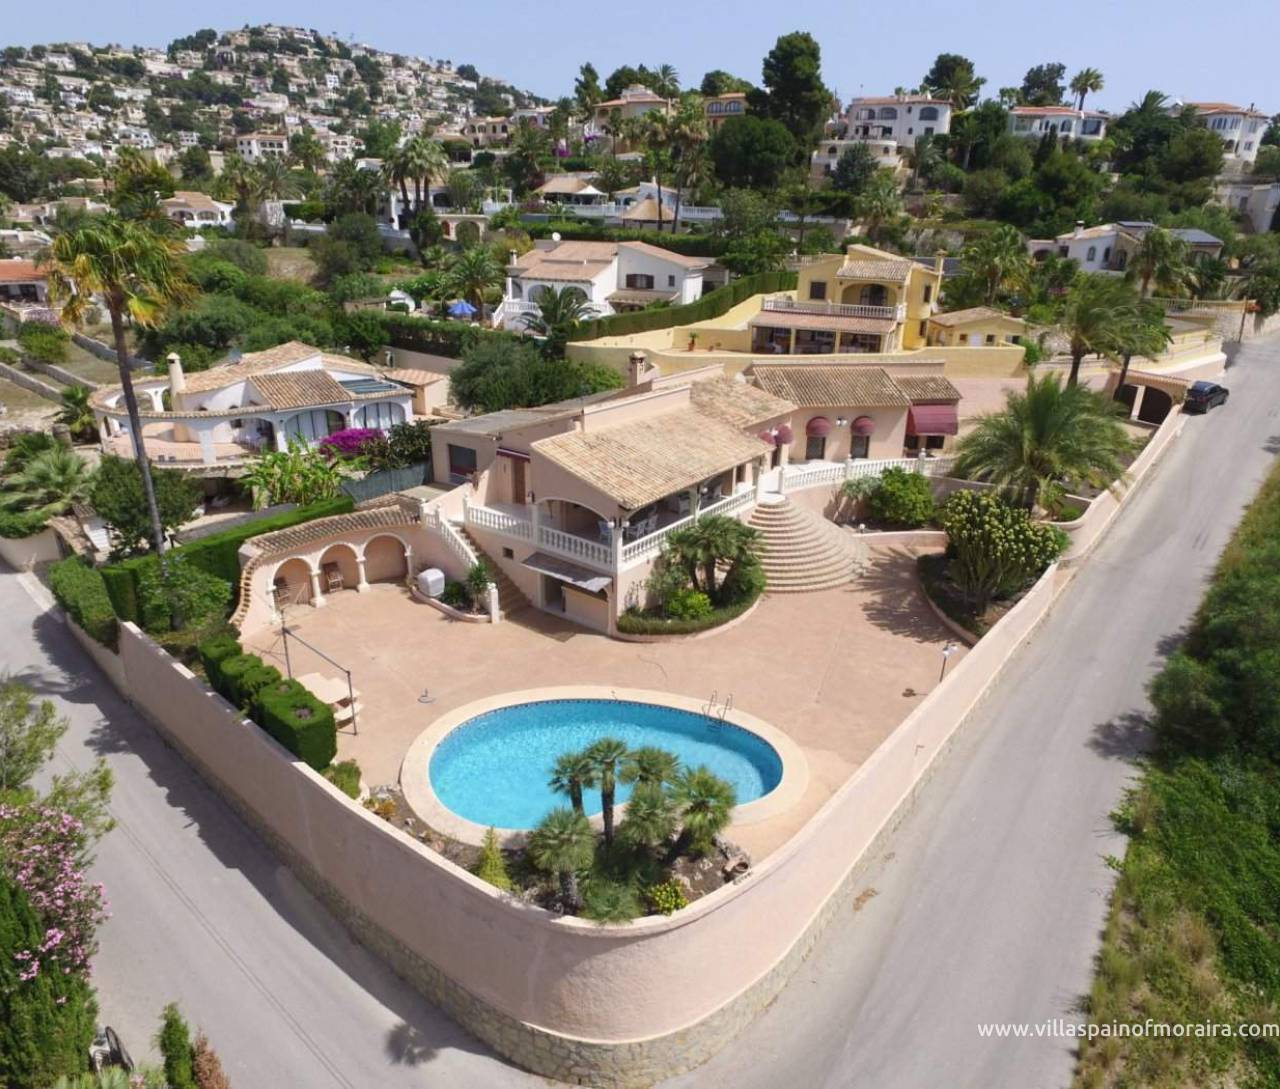 Villa for sale in Los Almendros Benissa Costa